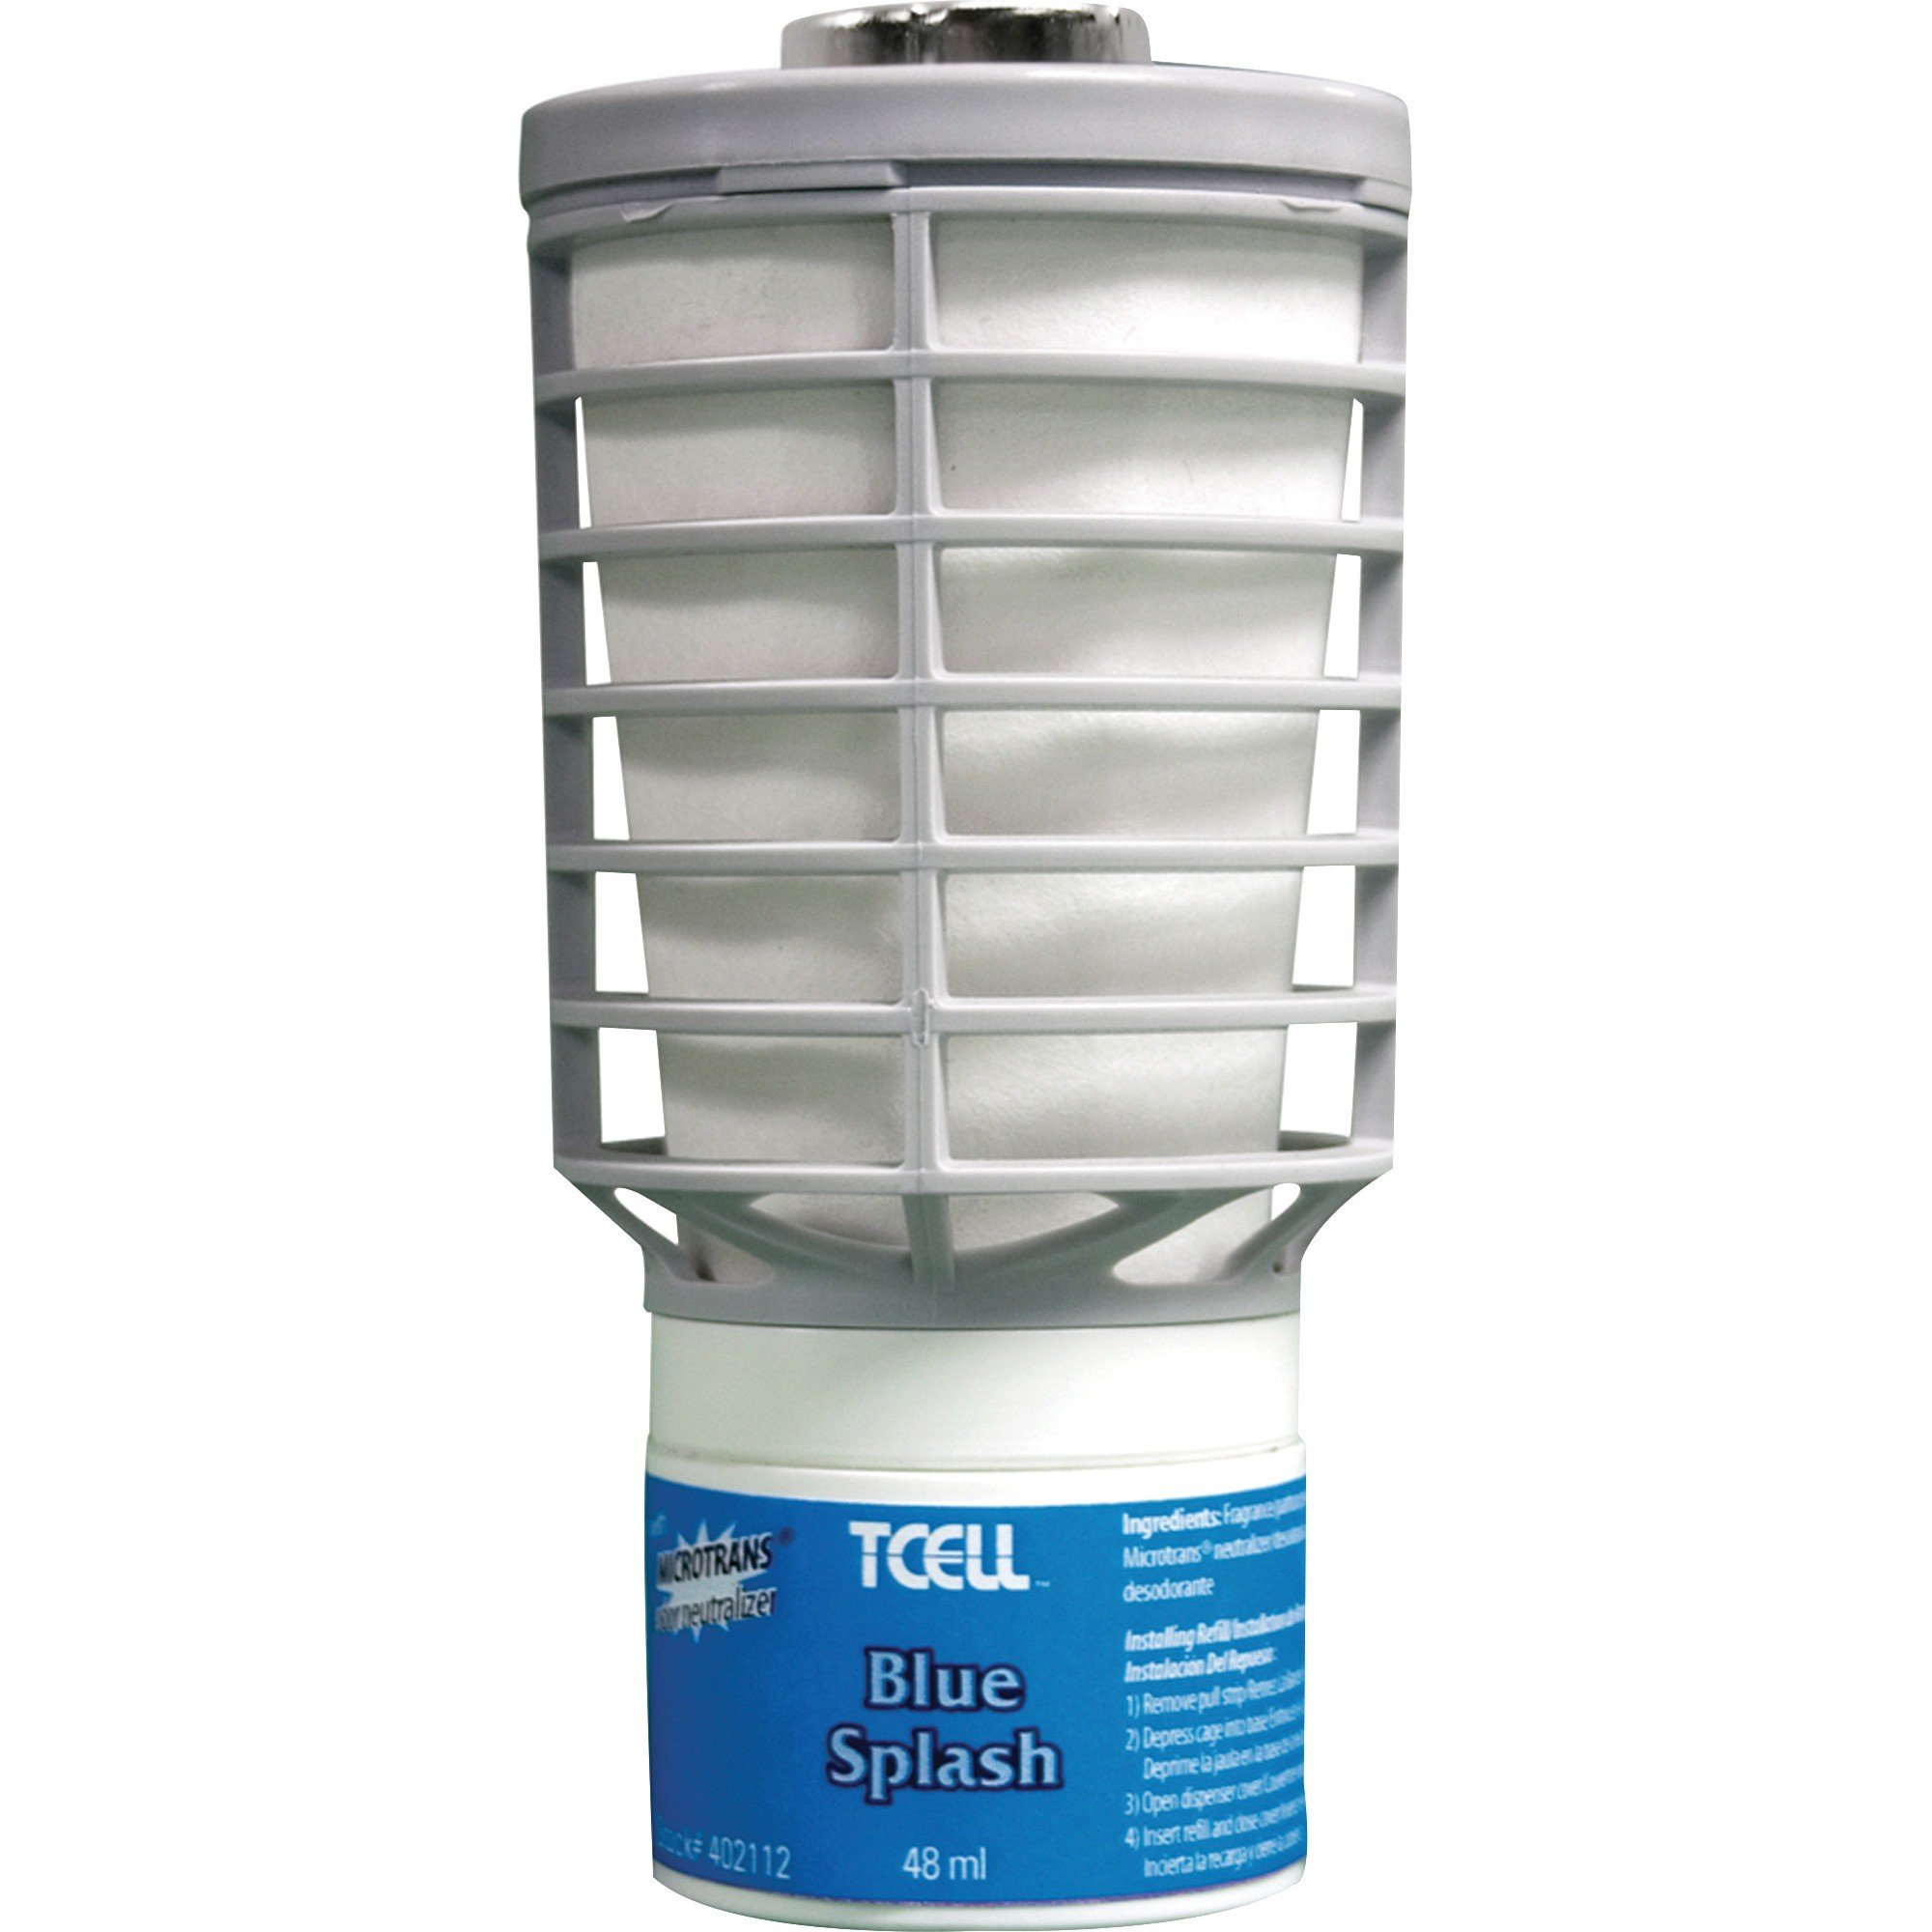 Rubbermaid Air Freshener TCell Refill - Blue Splash - 6/case